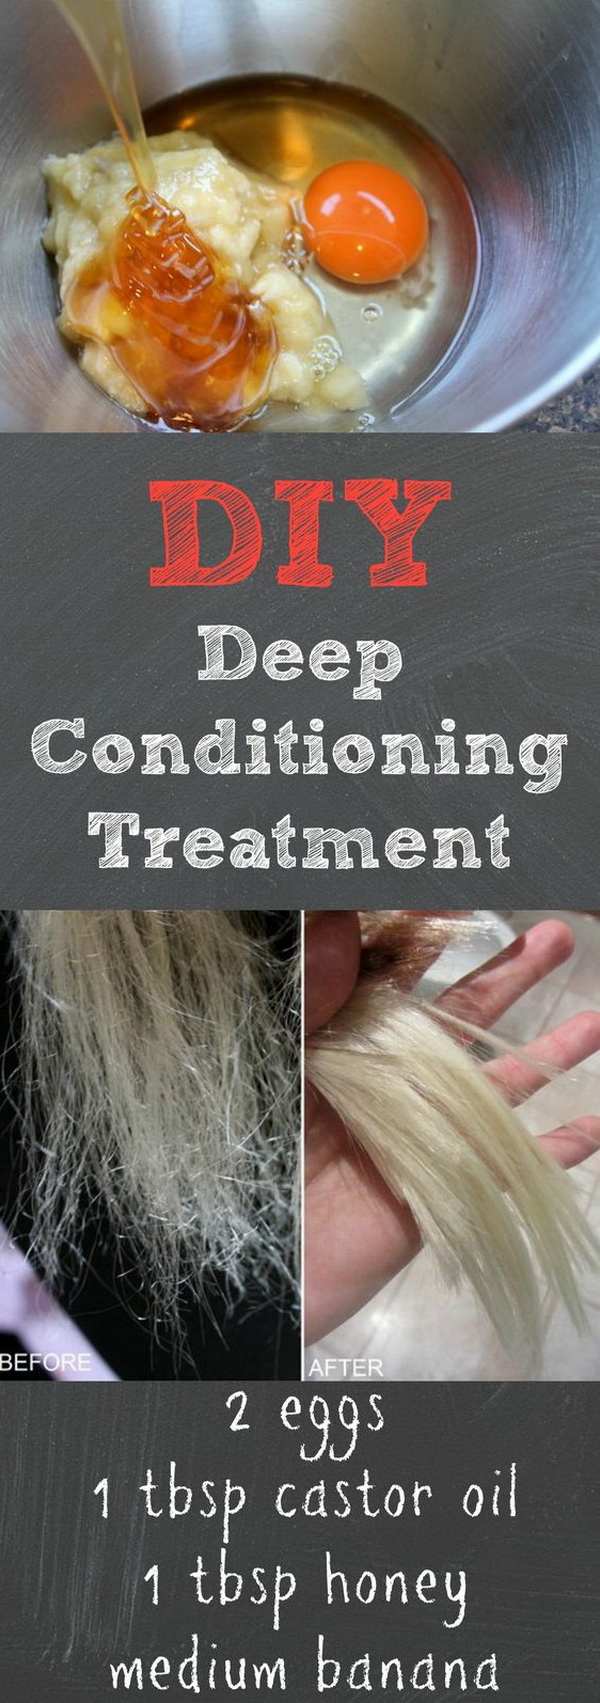 DIY Deep Conditioning Treatment With Egg And Castor Oil.